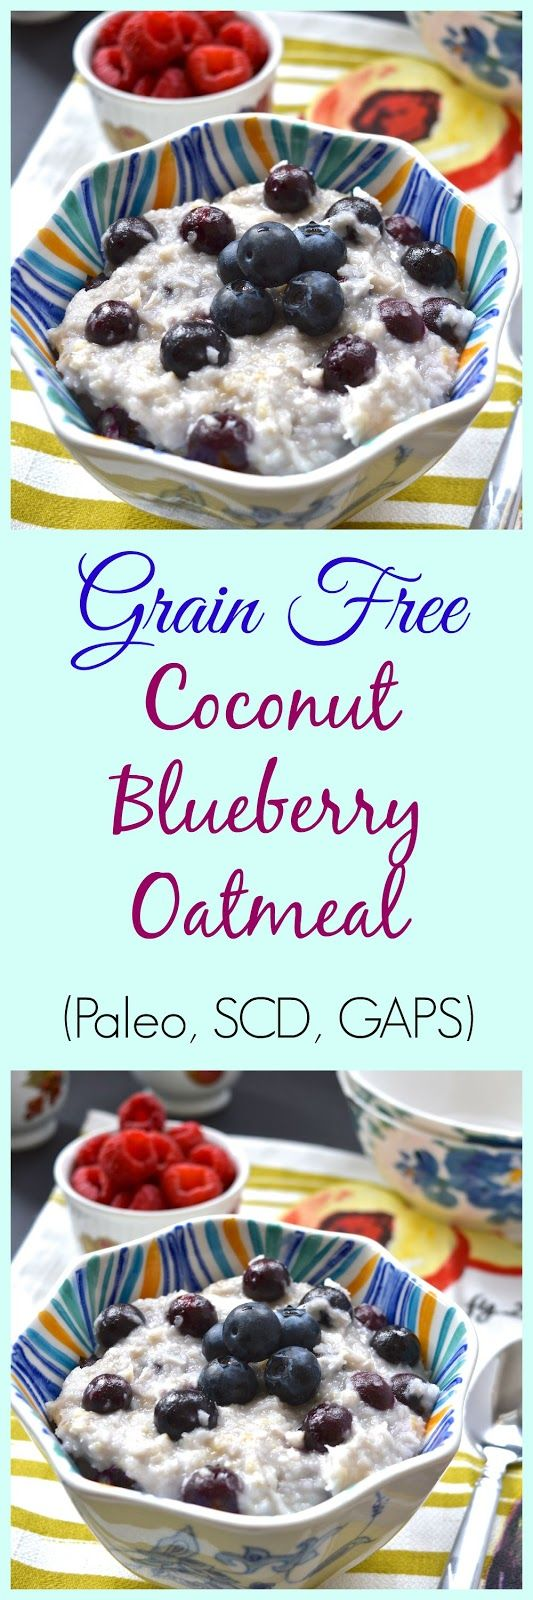 Pure and Simple Nourishment : Coconut Blueberry Paleo Oatmeal (AIP, Gluten Free, GAPS, SCD)